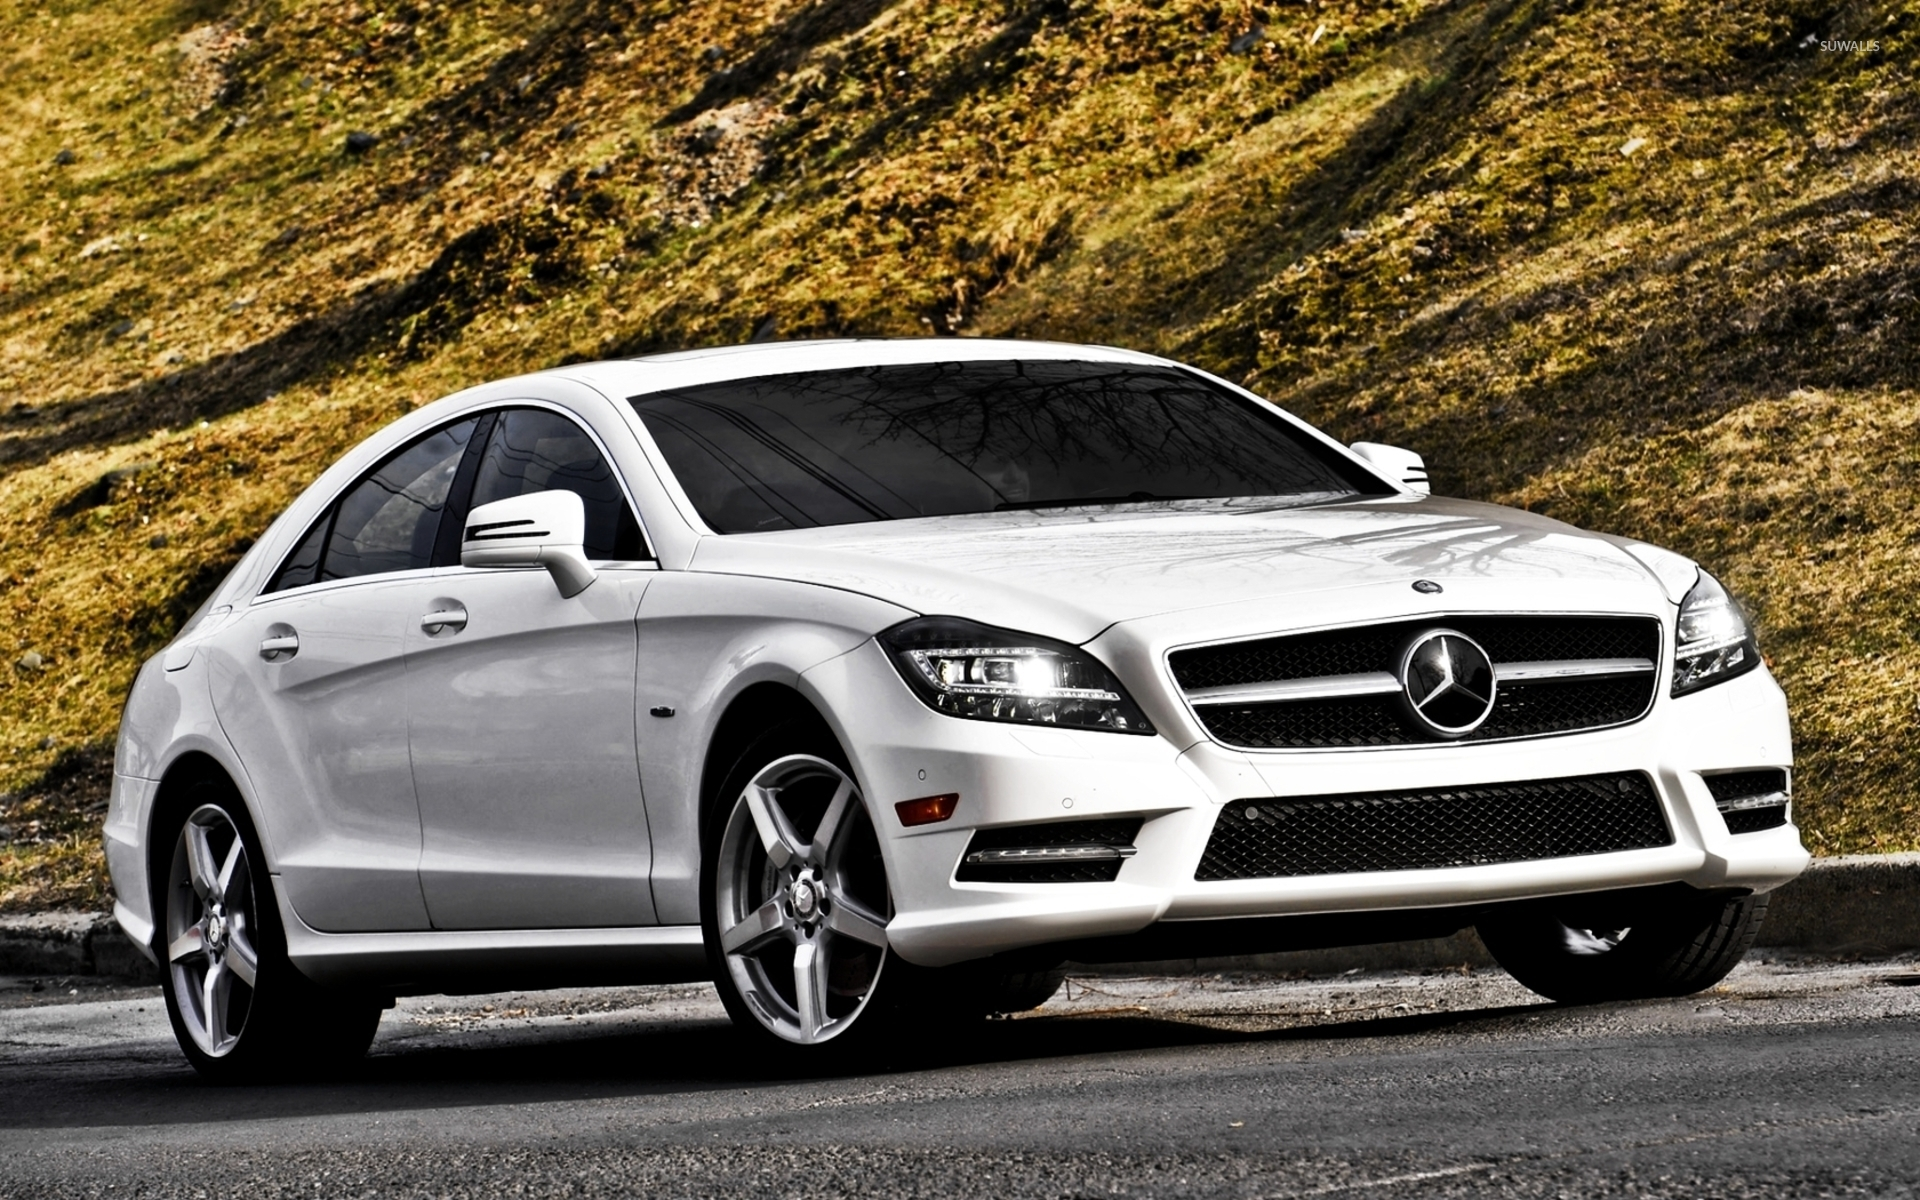 Mercedes benz cls550 wallpaper car wallpapers 39431 for Mercedes benz 550 cls